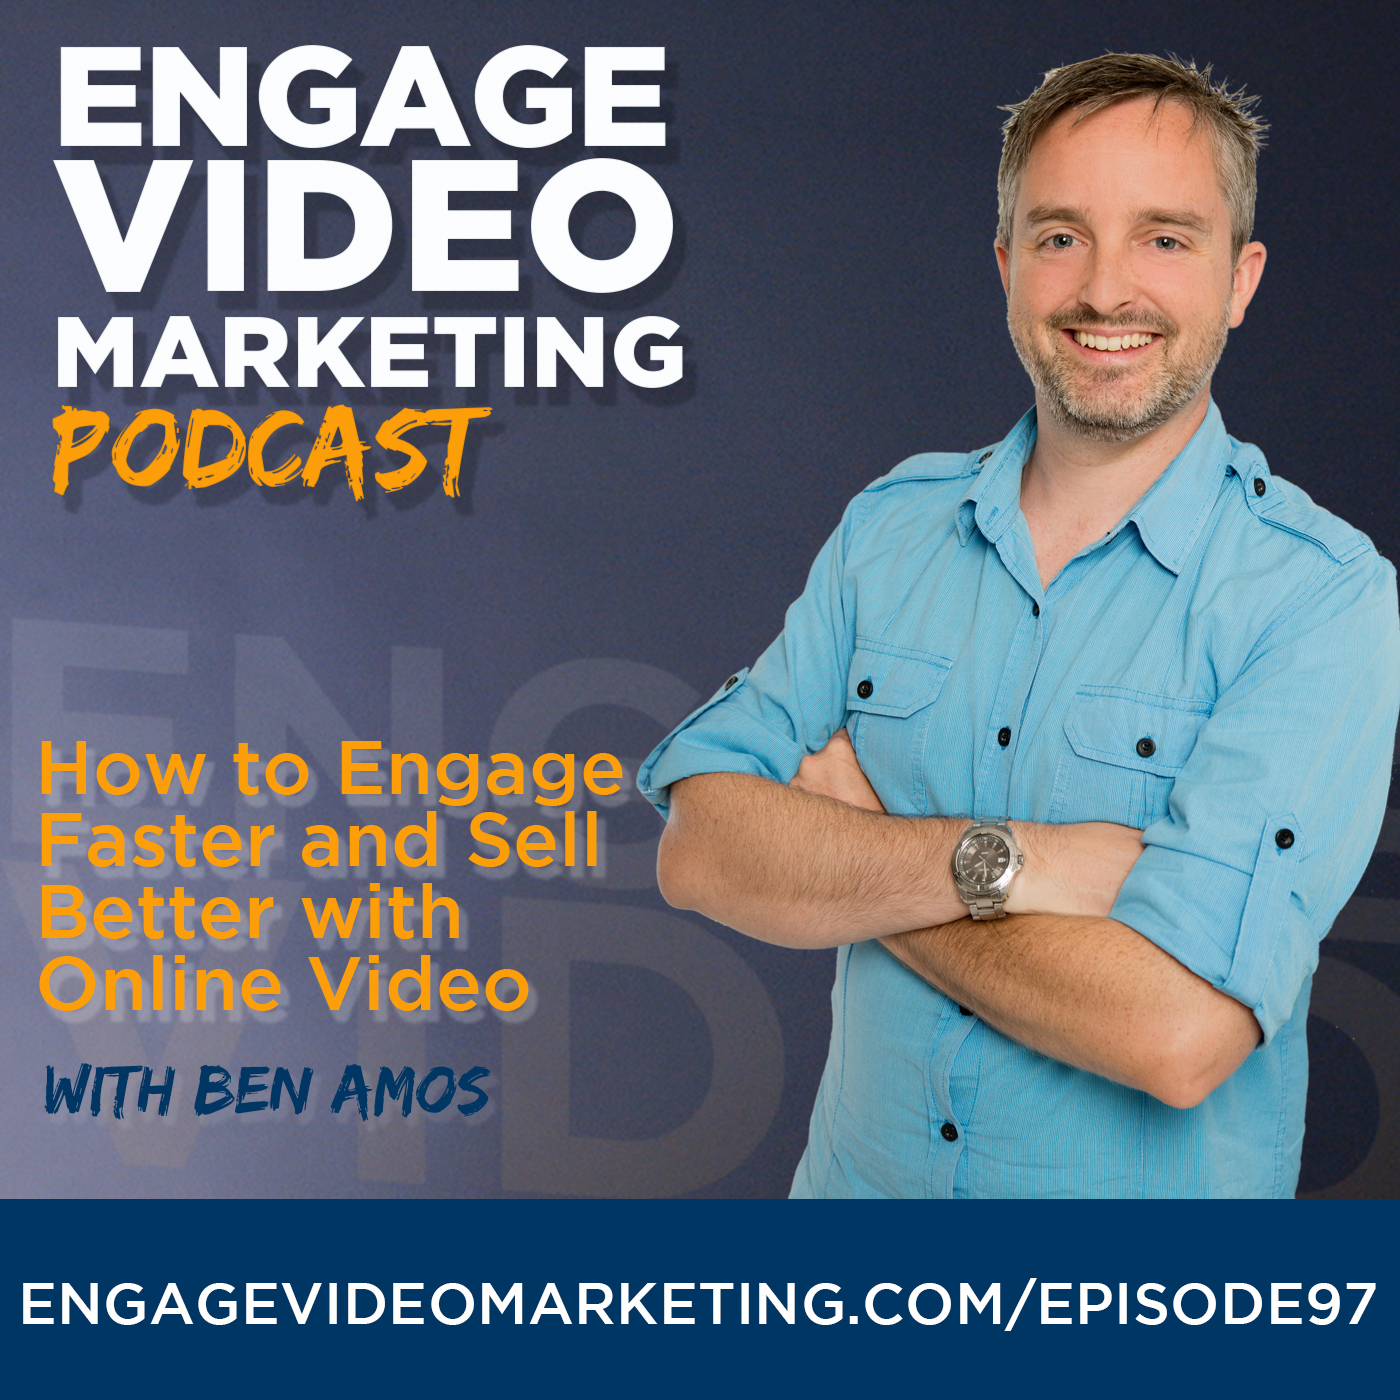 Workshop: How to Engage Better and Sell Faster with Online Video